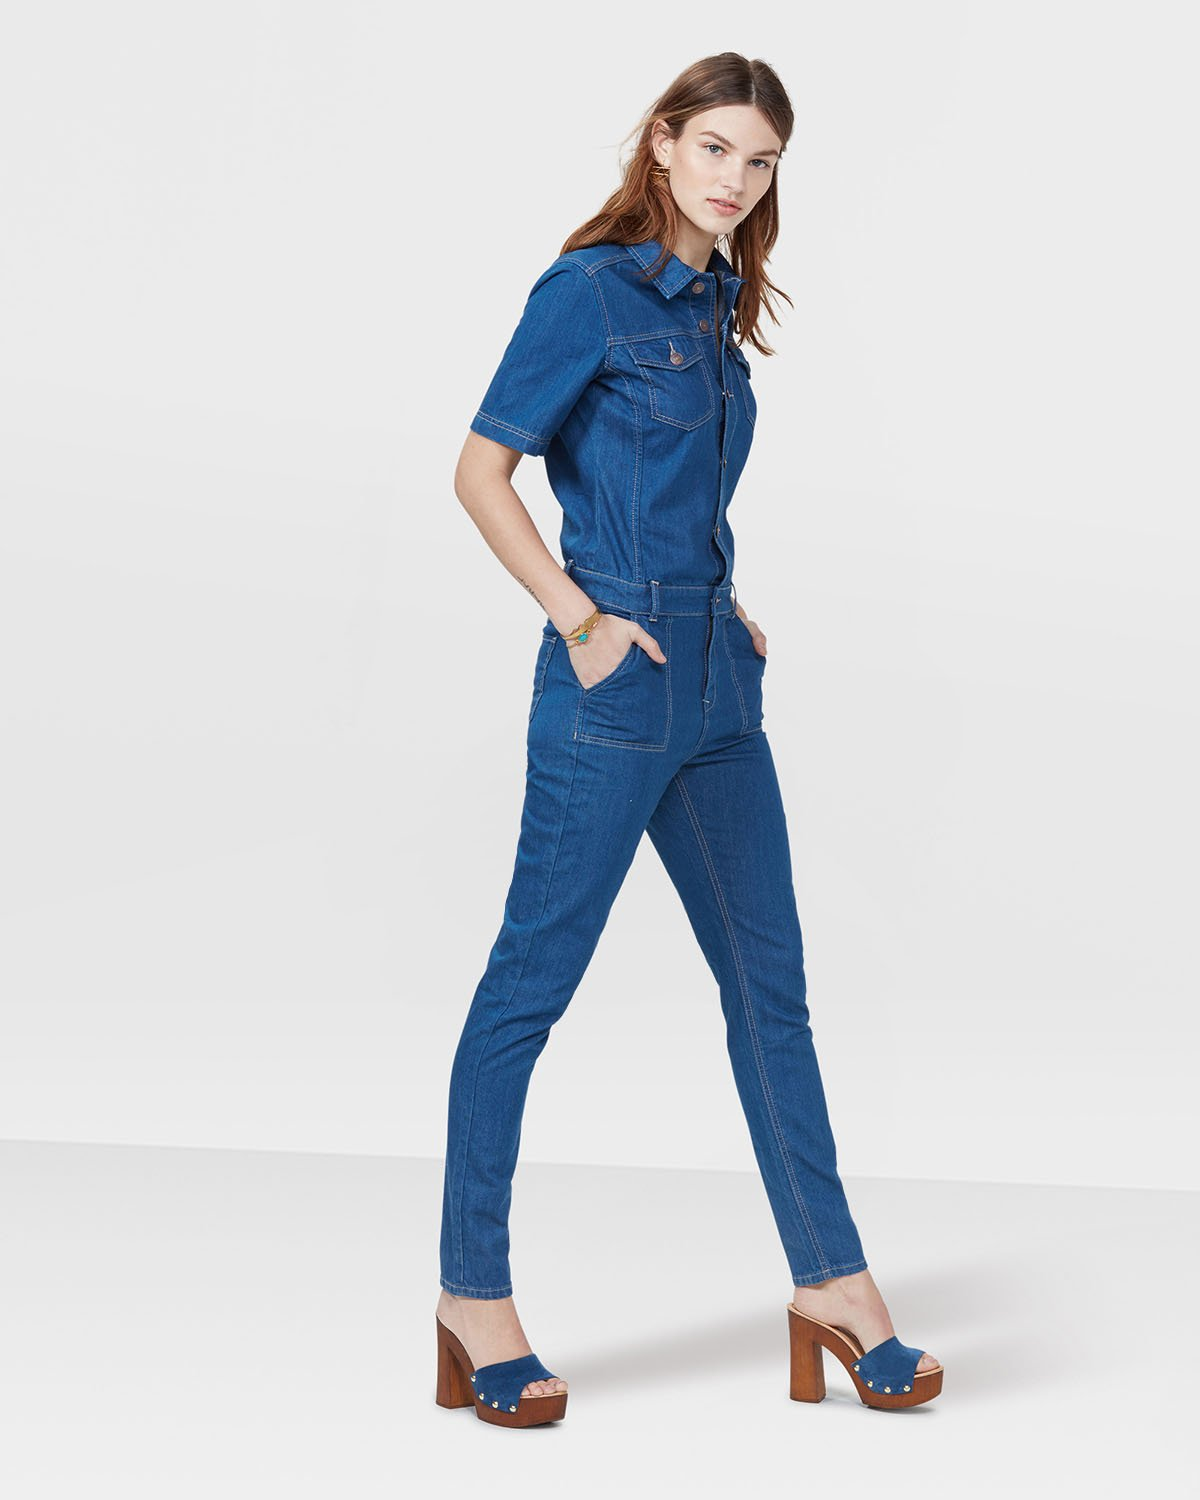 Shop online for stylish jumpsuits for women at H&M. Choose from short rompers and wide-legged jumpsuits in a range of colors, materials and styles, from cas.